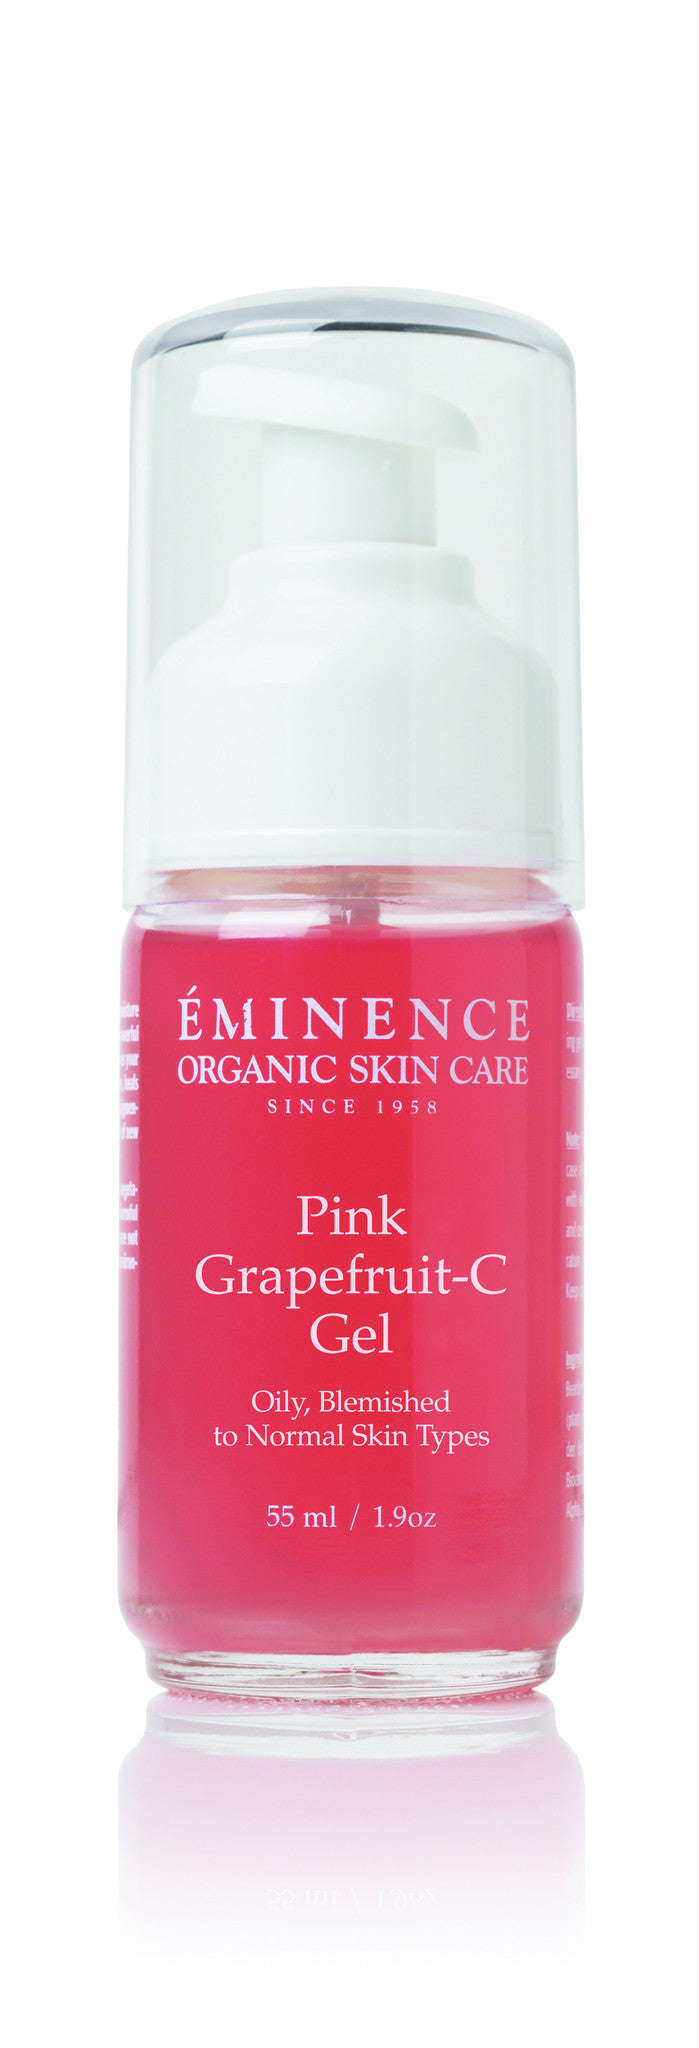 Pink Grapefruit-C Gel - Organic Skin Therapy